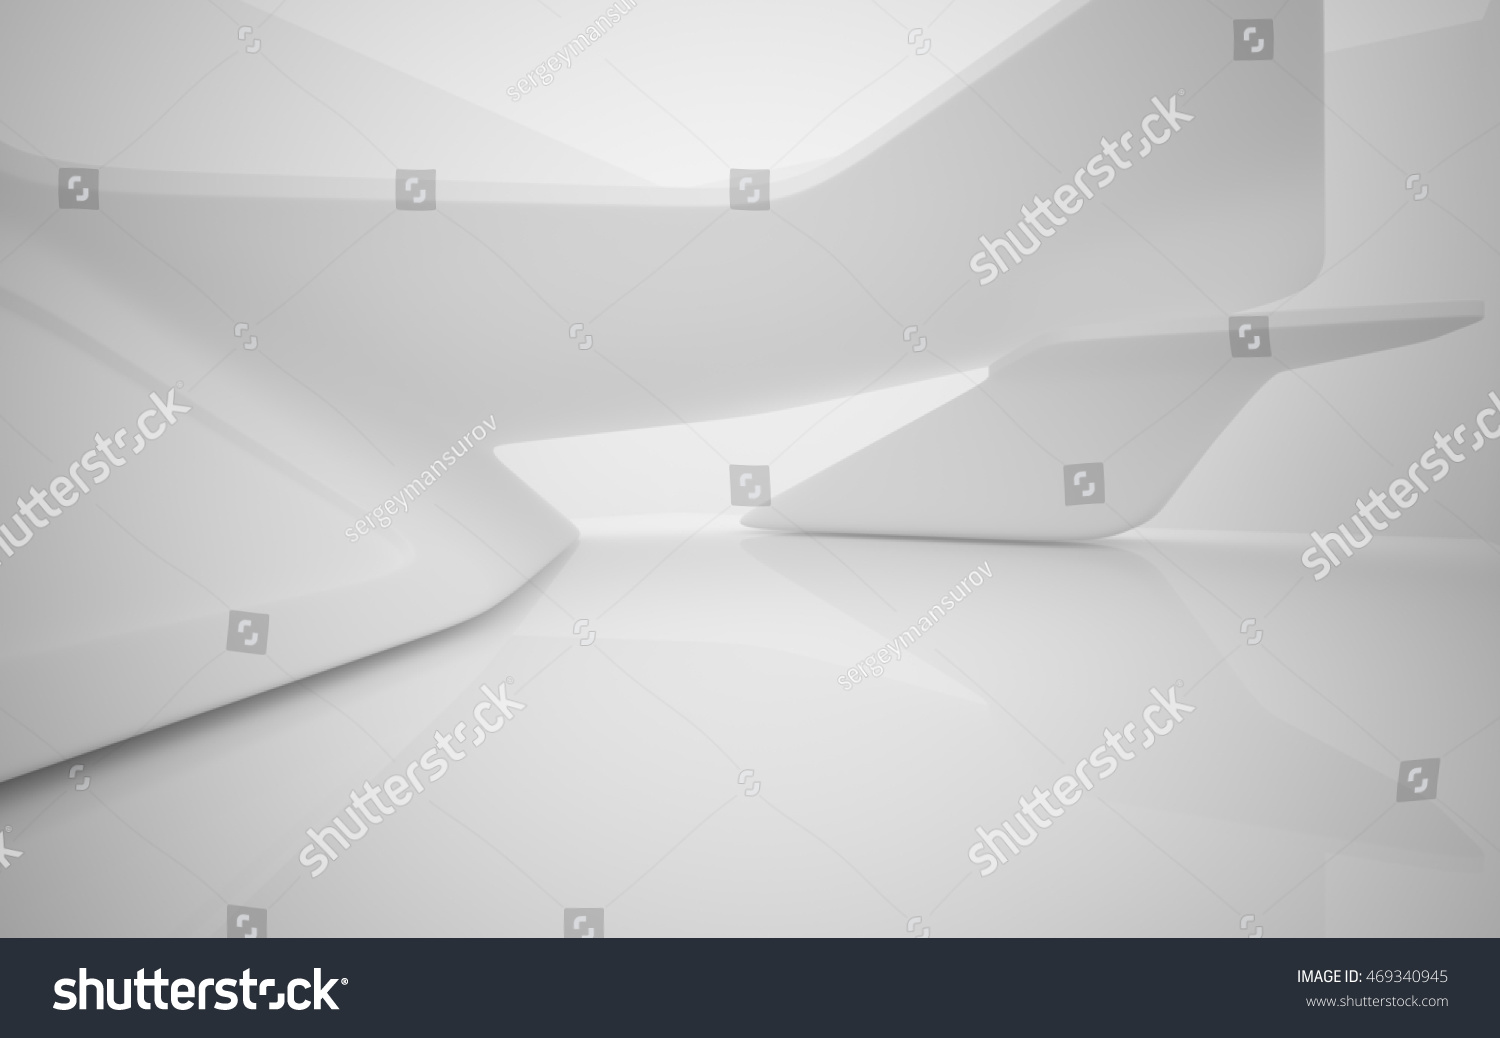 abstract smooth white interior future architectural stock abstract smooth white interior of the future architectural background 3d illustration and rendering